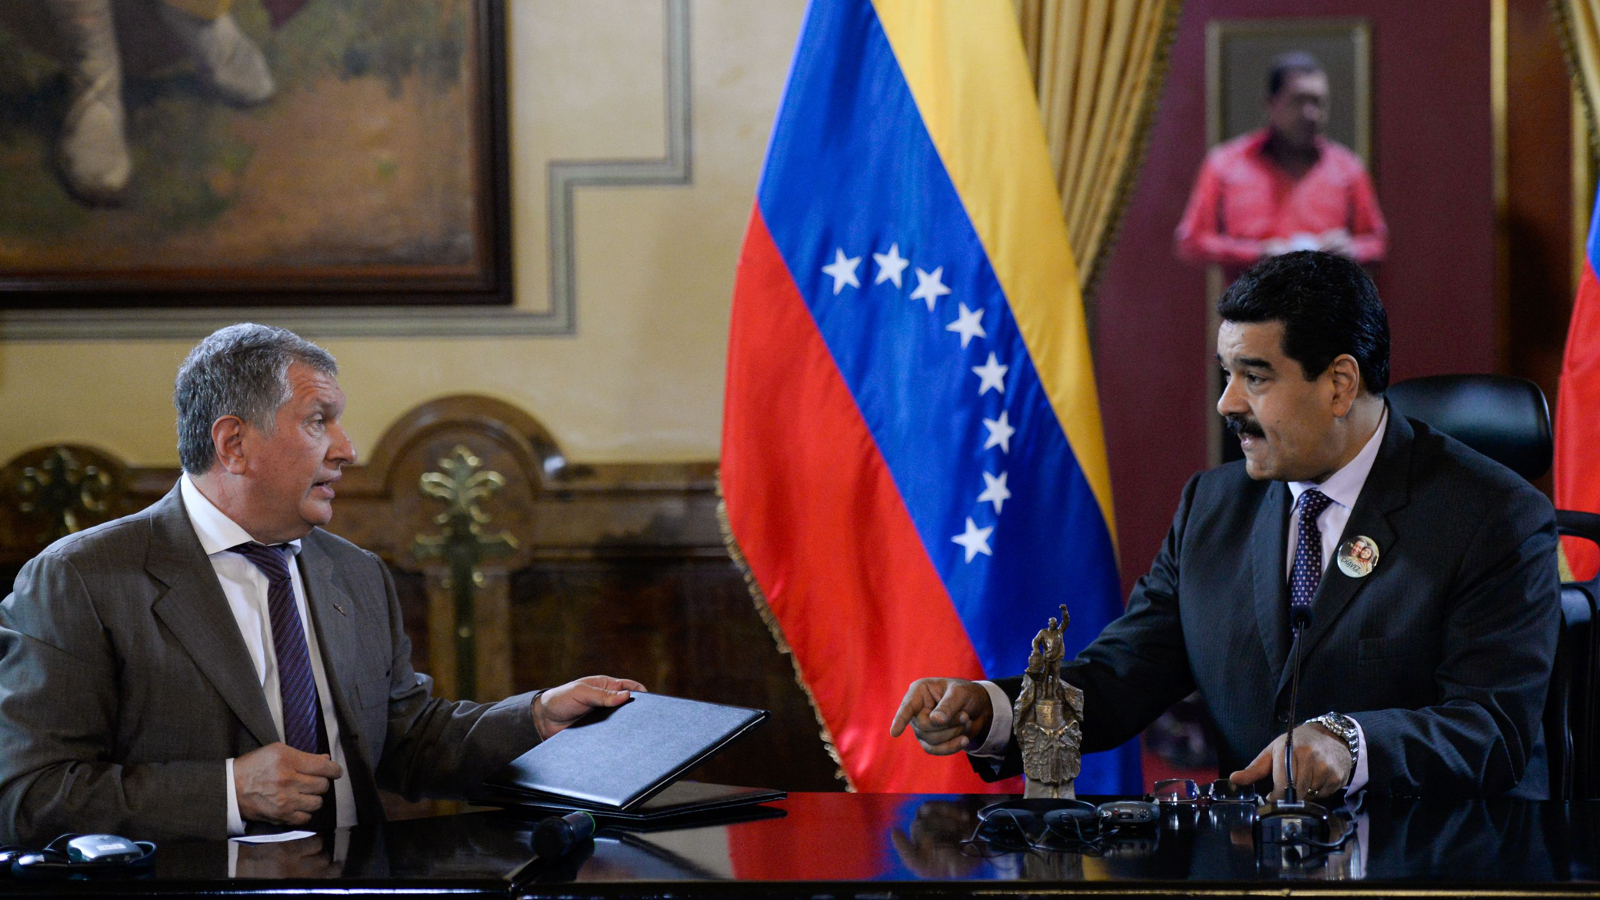 Maduro and Sechin